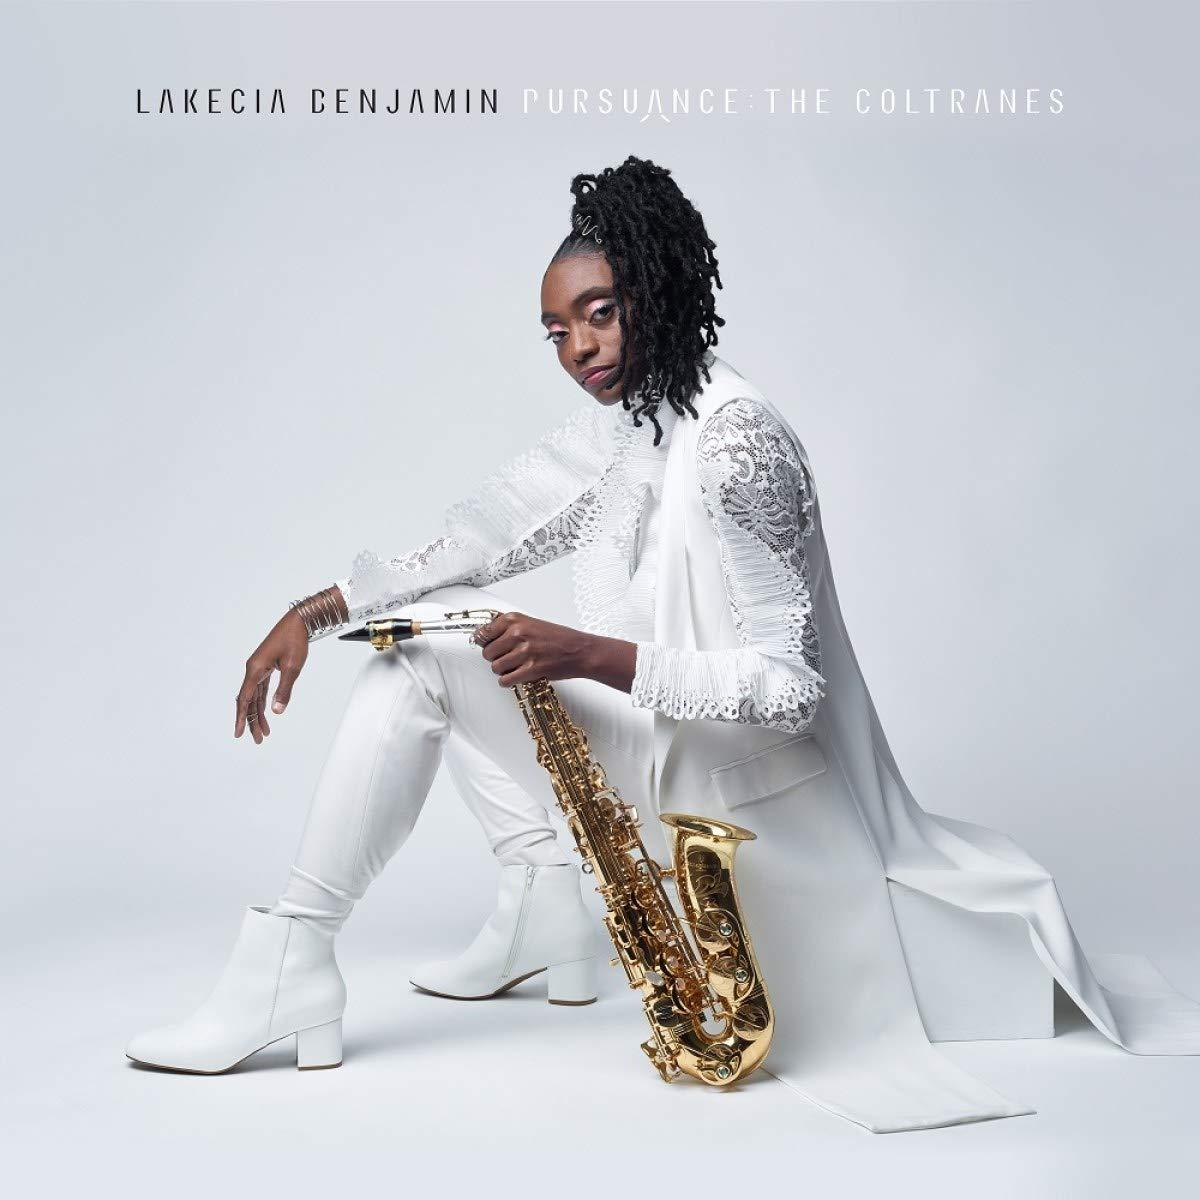 Lakecia Benjamin - Pursuance: The Coltranes (CD) - Urban Vinyl | Records, Headphones, and more.